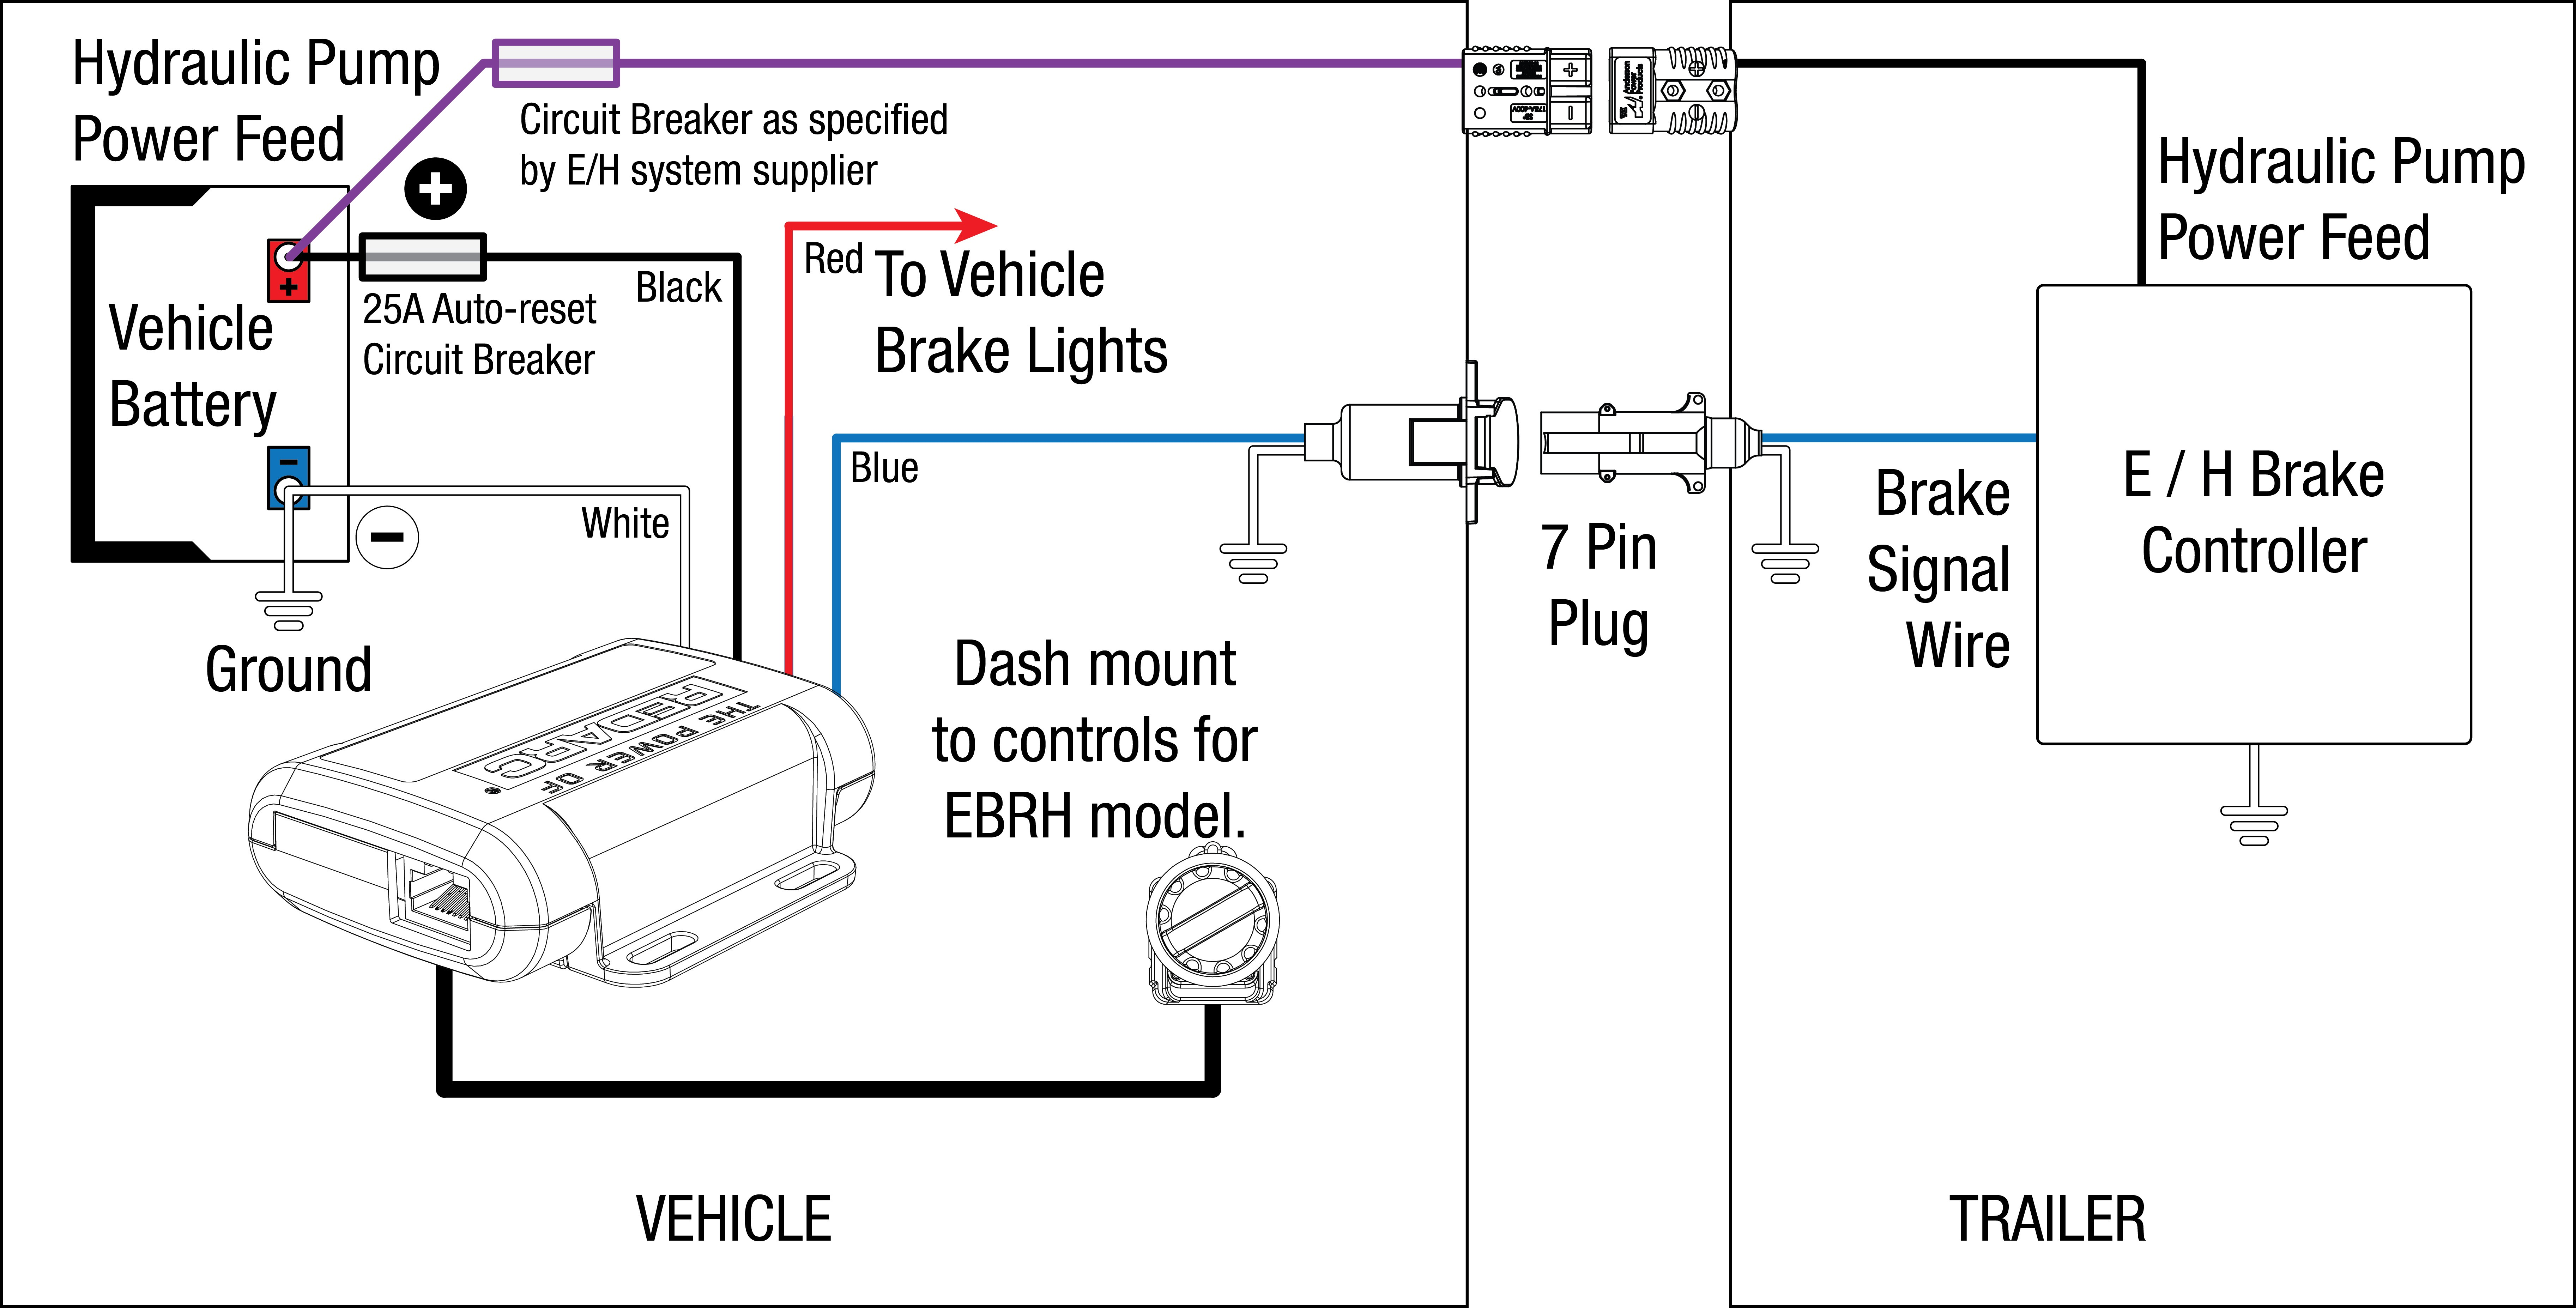 Electric Meter Box Wiring Diagram Lovely 200 Amp Base Breaker Trailer Brake Controller And Inst 03 At Of